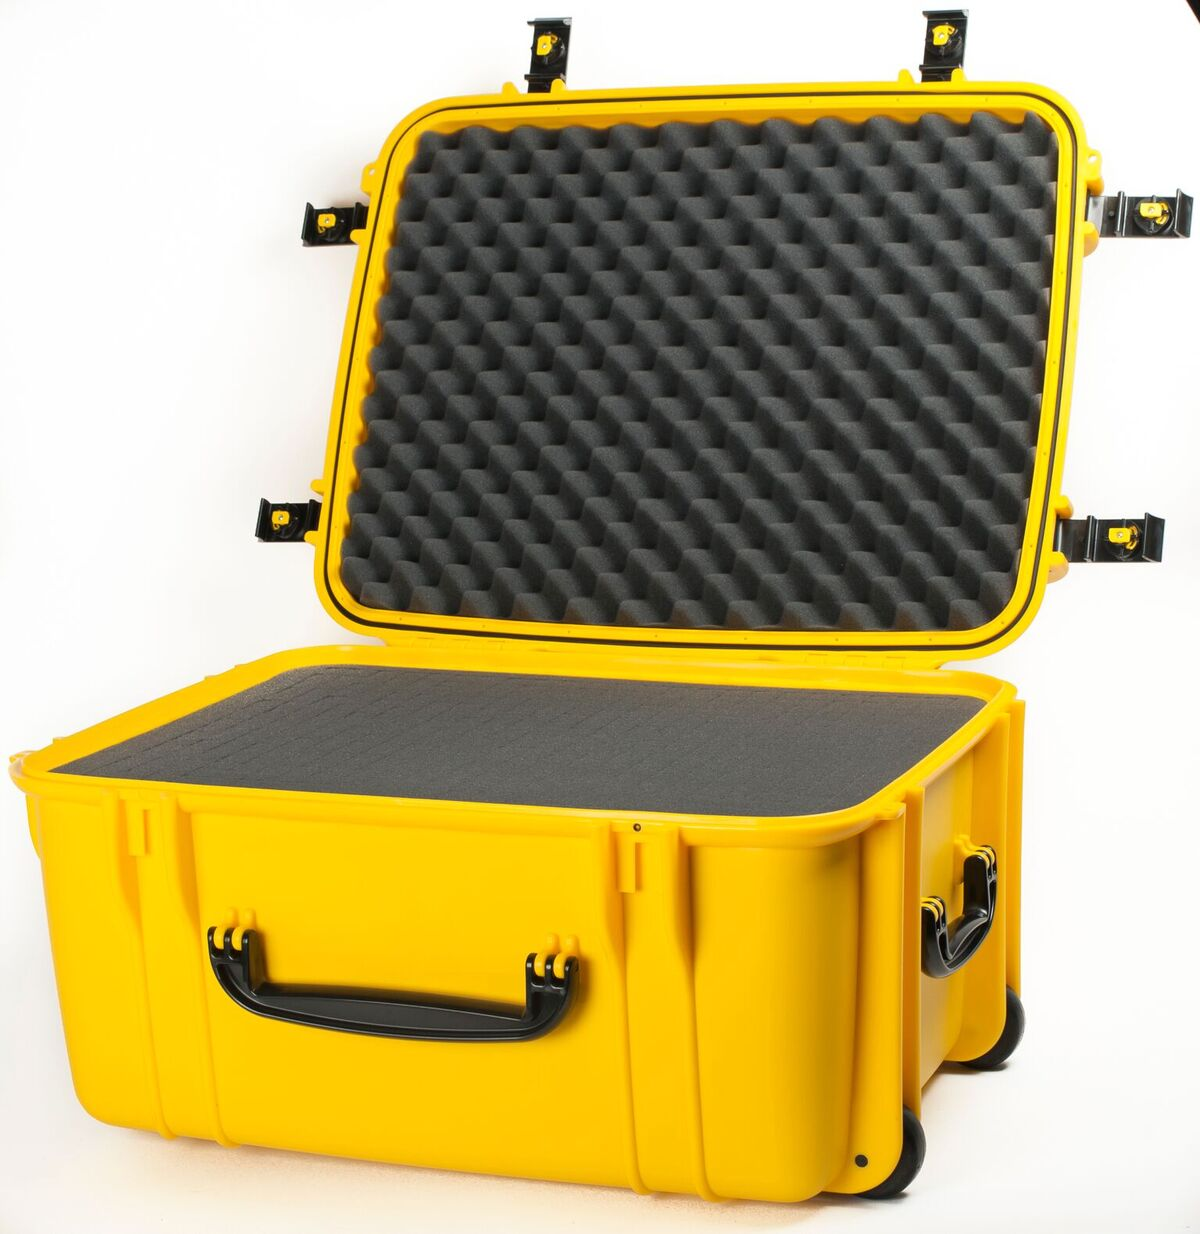 SEAHORSE PROTECTIVE EQUIPMENT CASES      SE1220F,YL